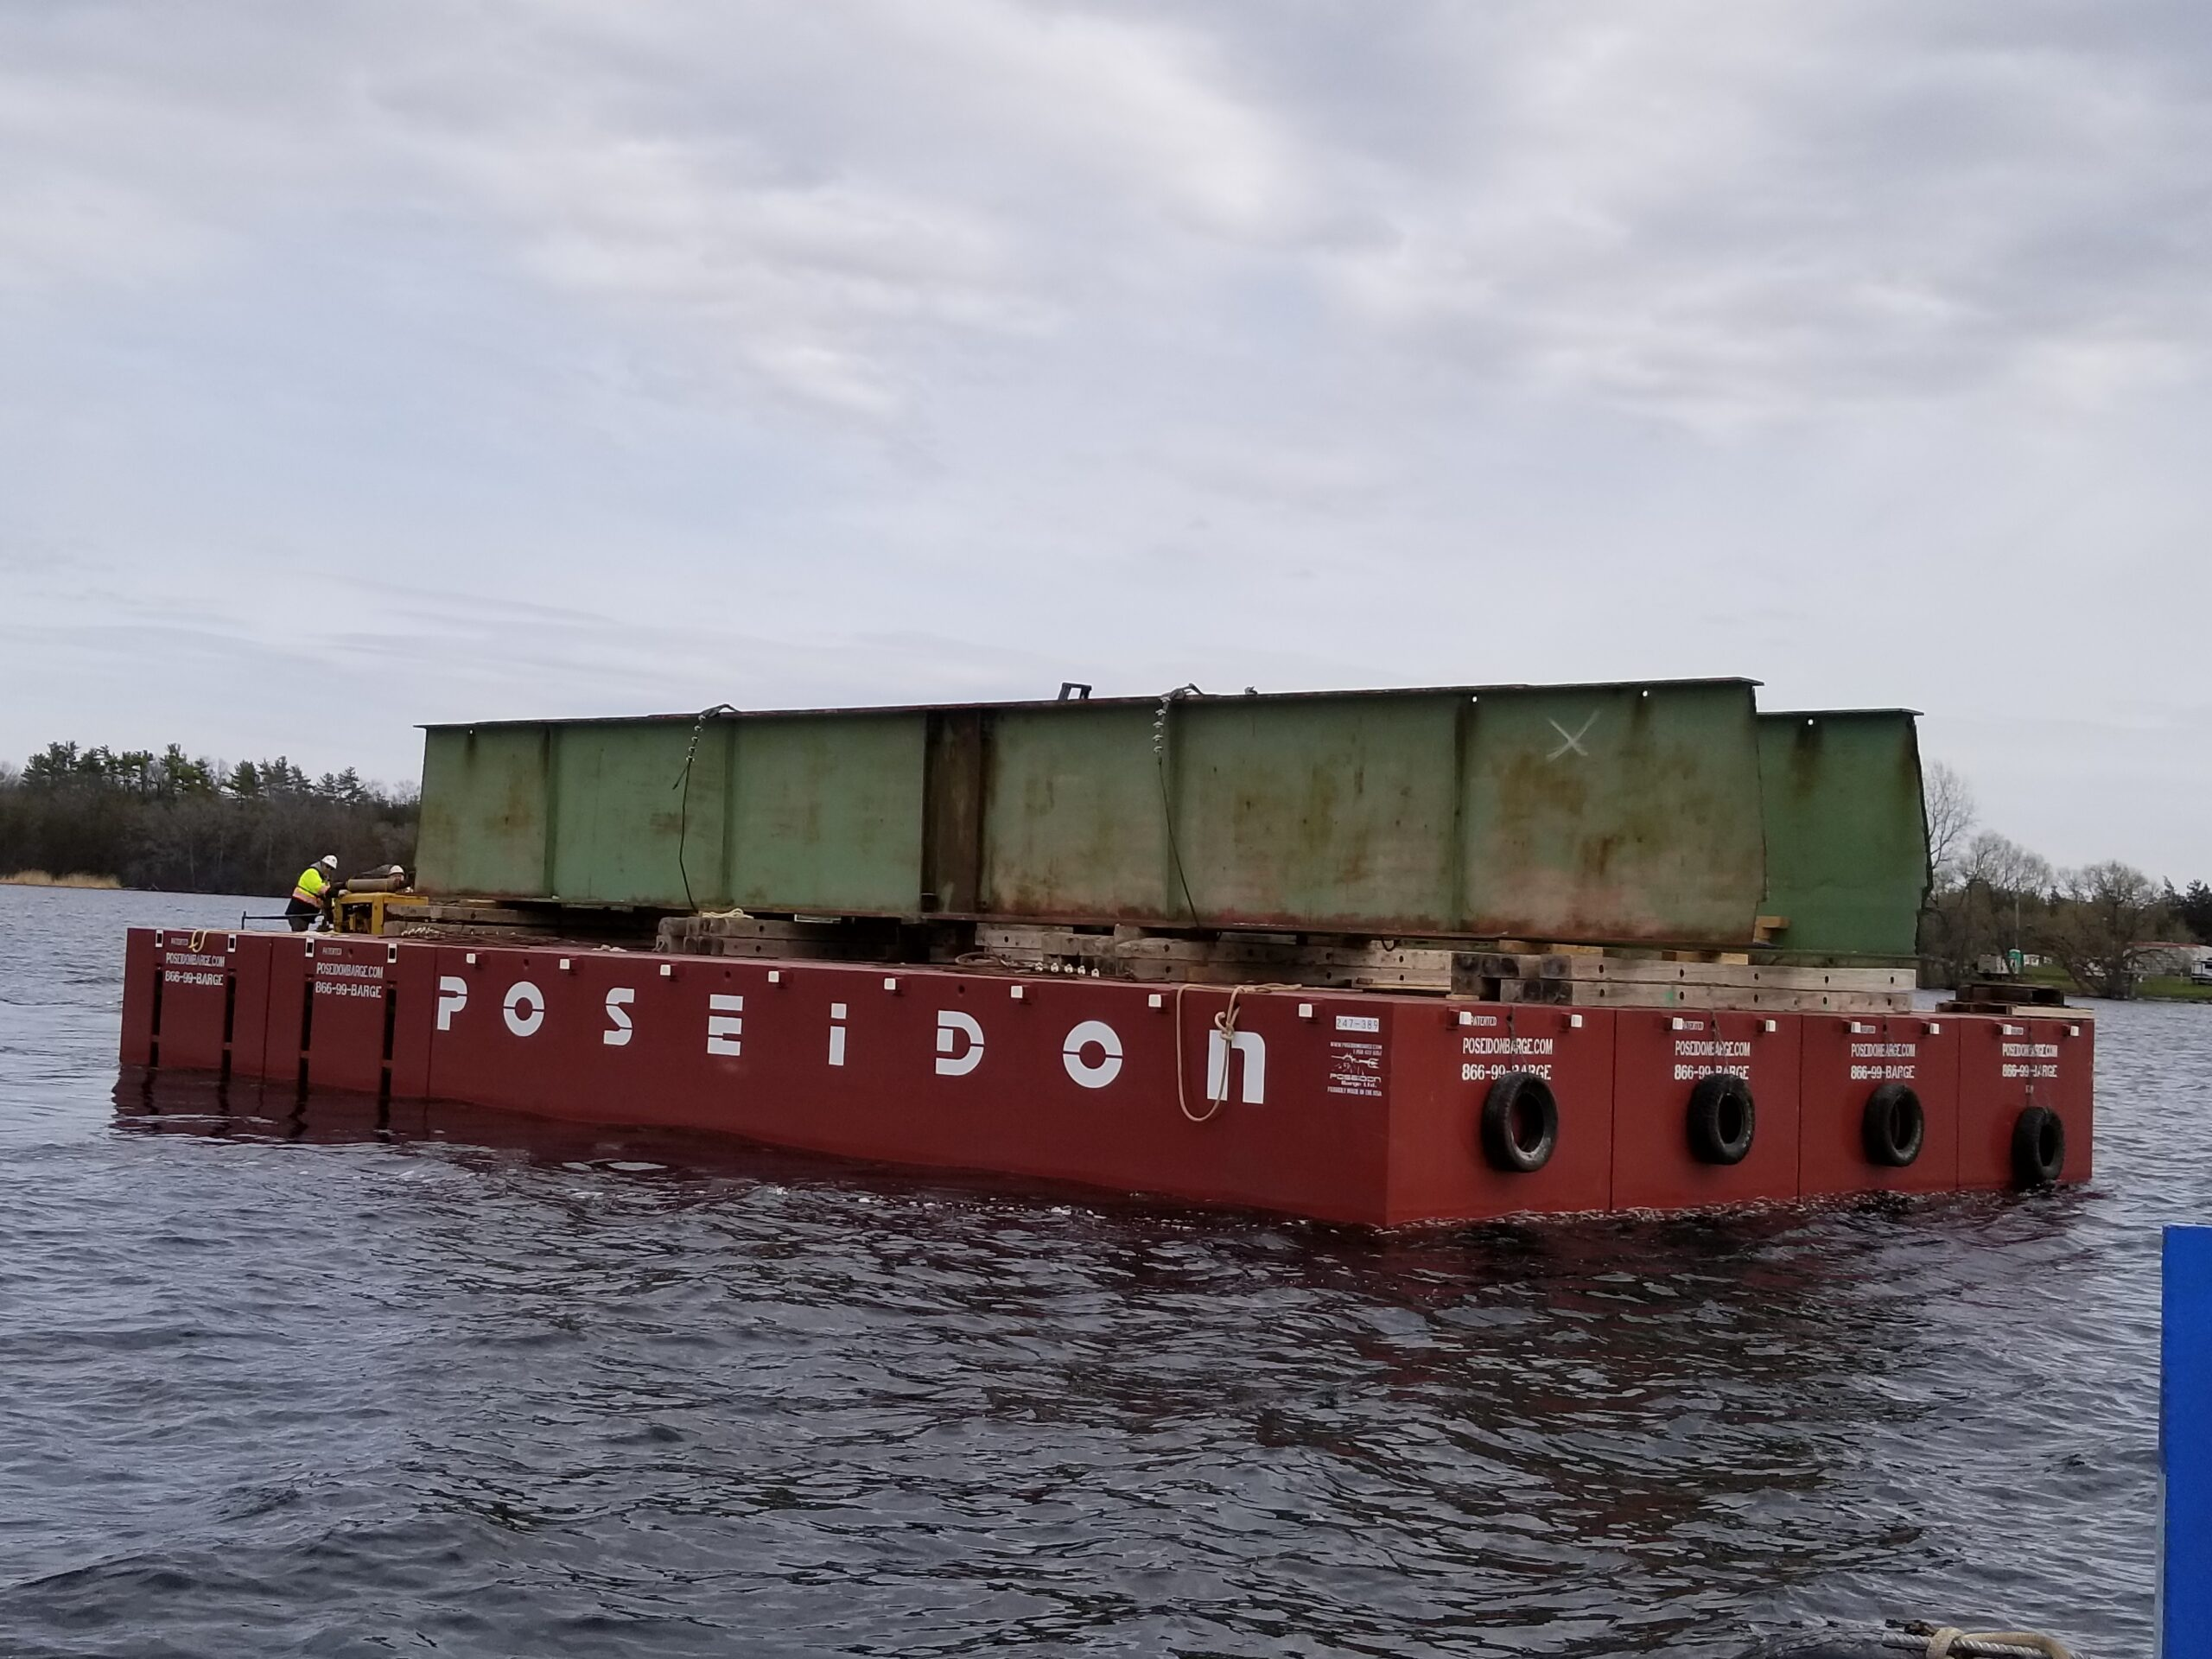 Removed girder section being moved by the barge to the shore